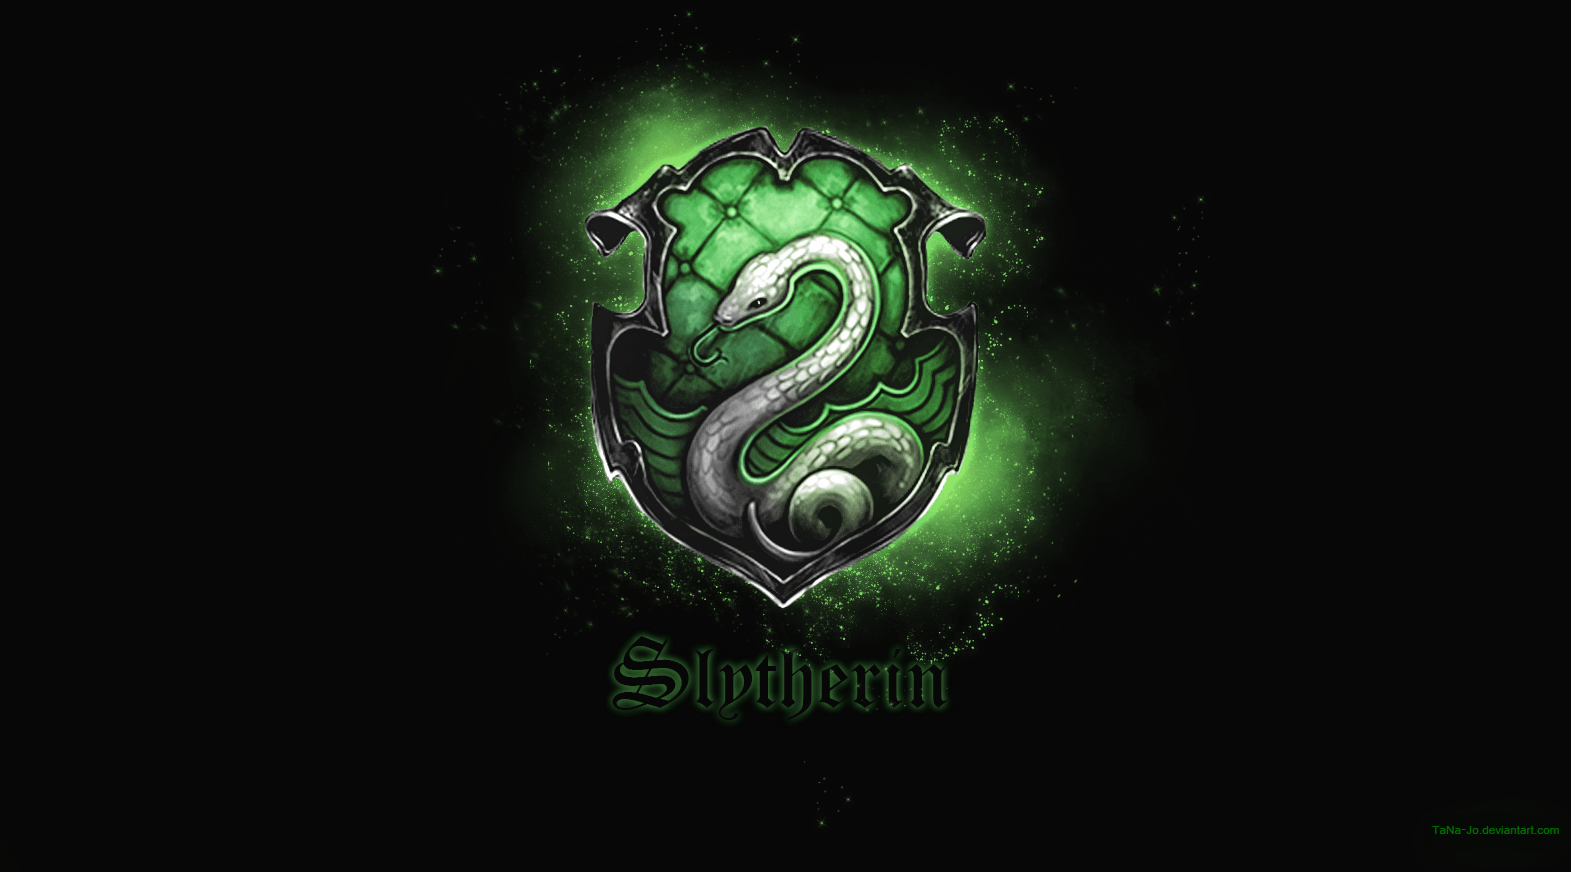 slytherin wallpaper hd by tana jo on deviantart